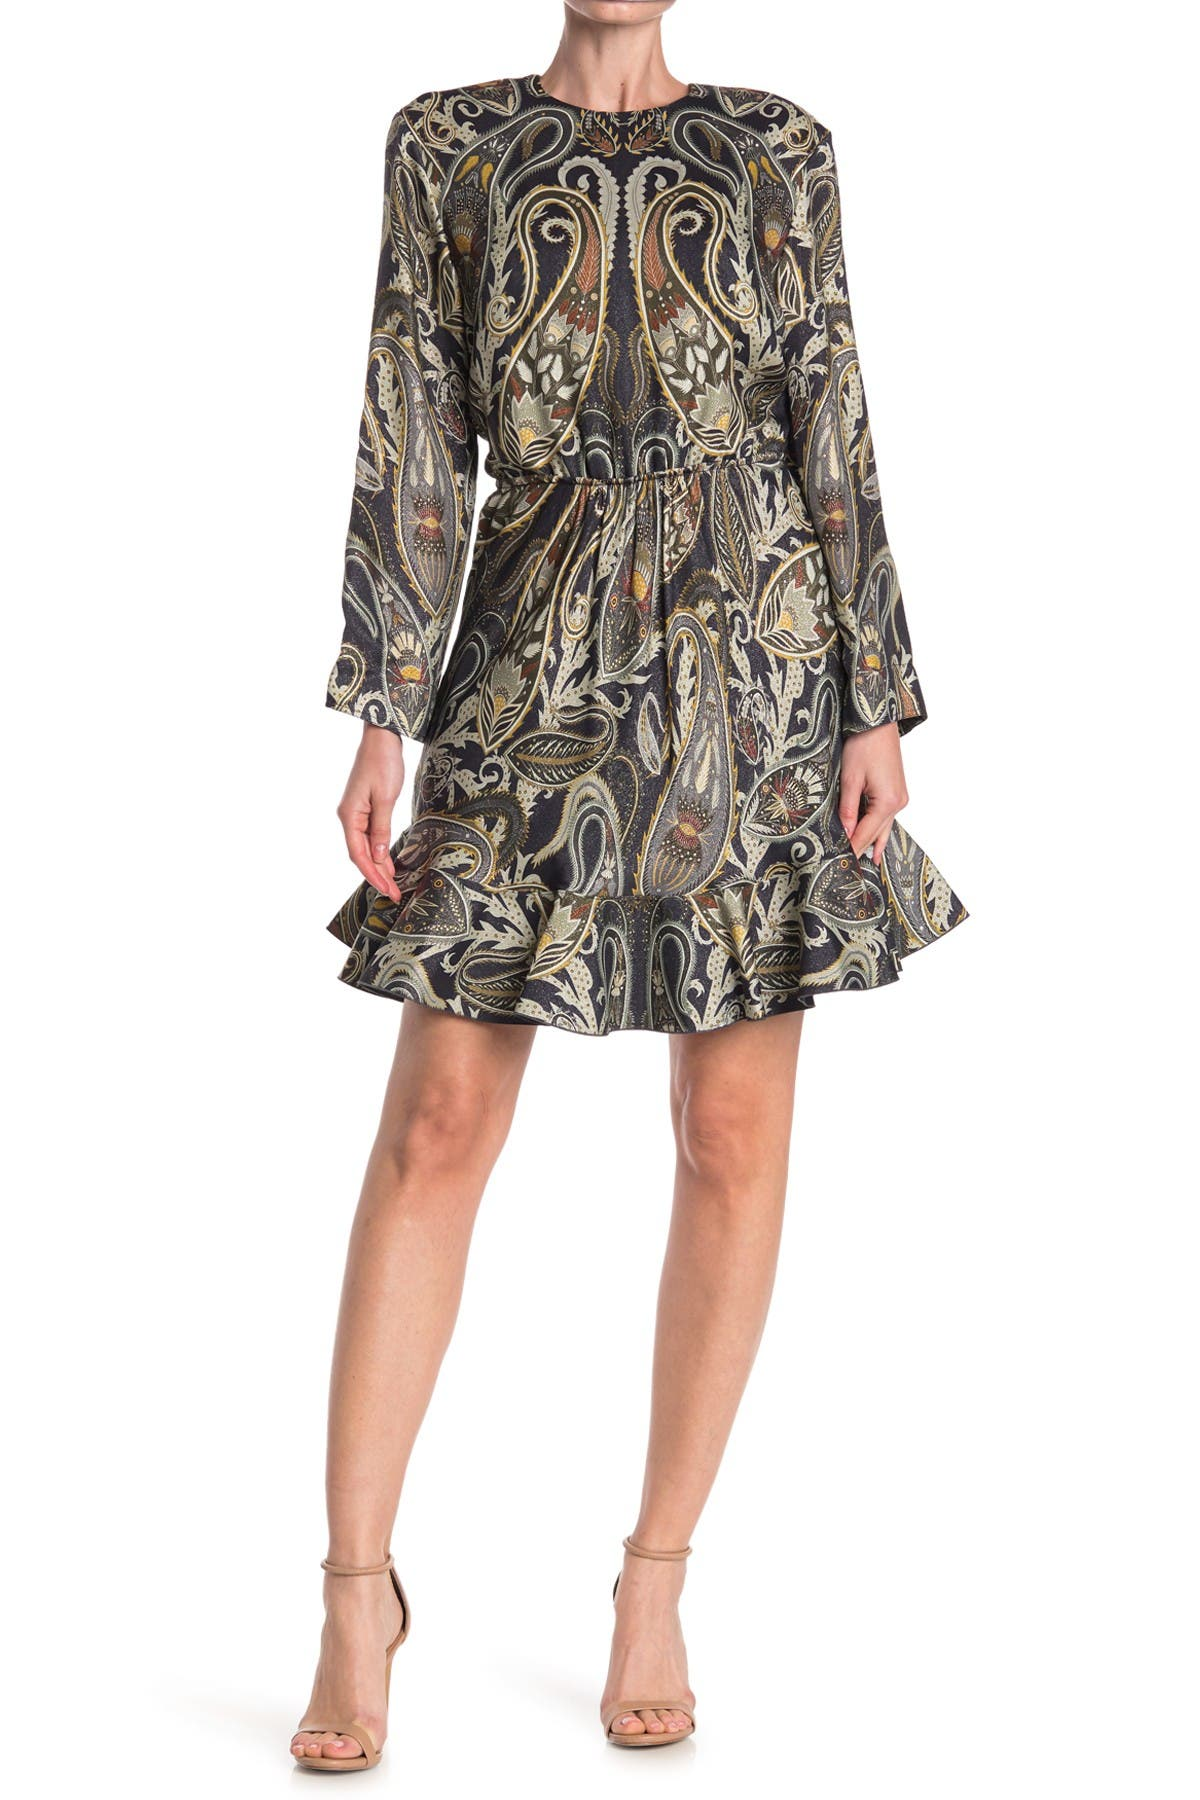 Image of Chloe Paisley Print Silk Blend Ruffle Hem Dress